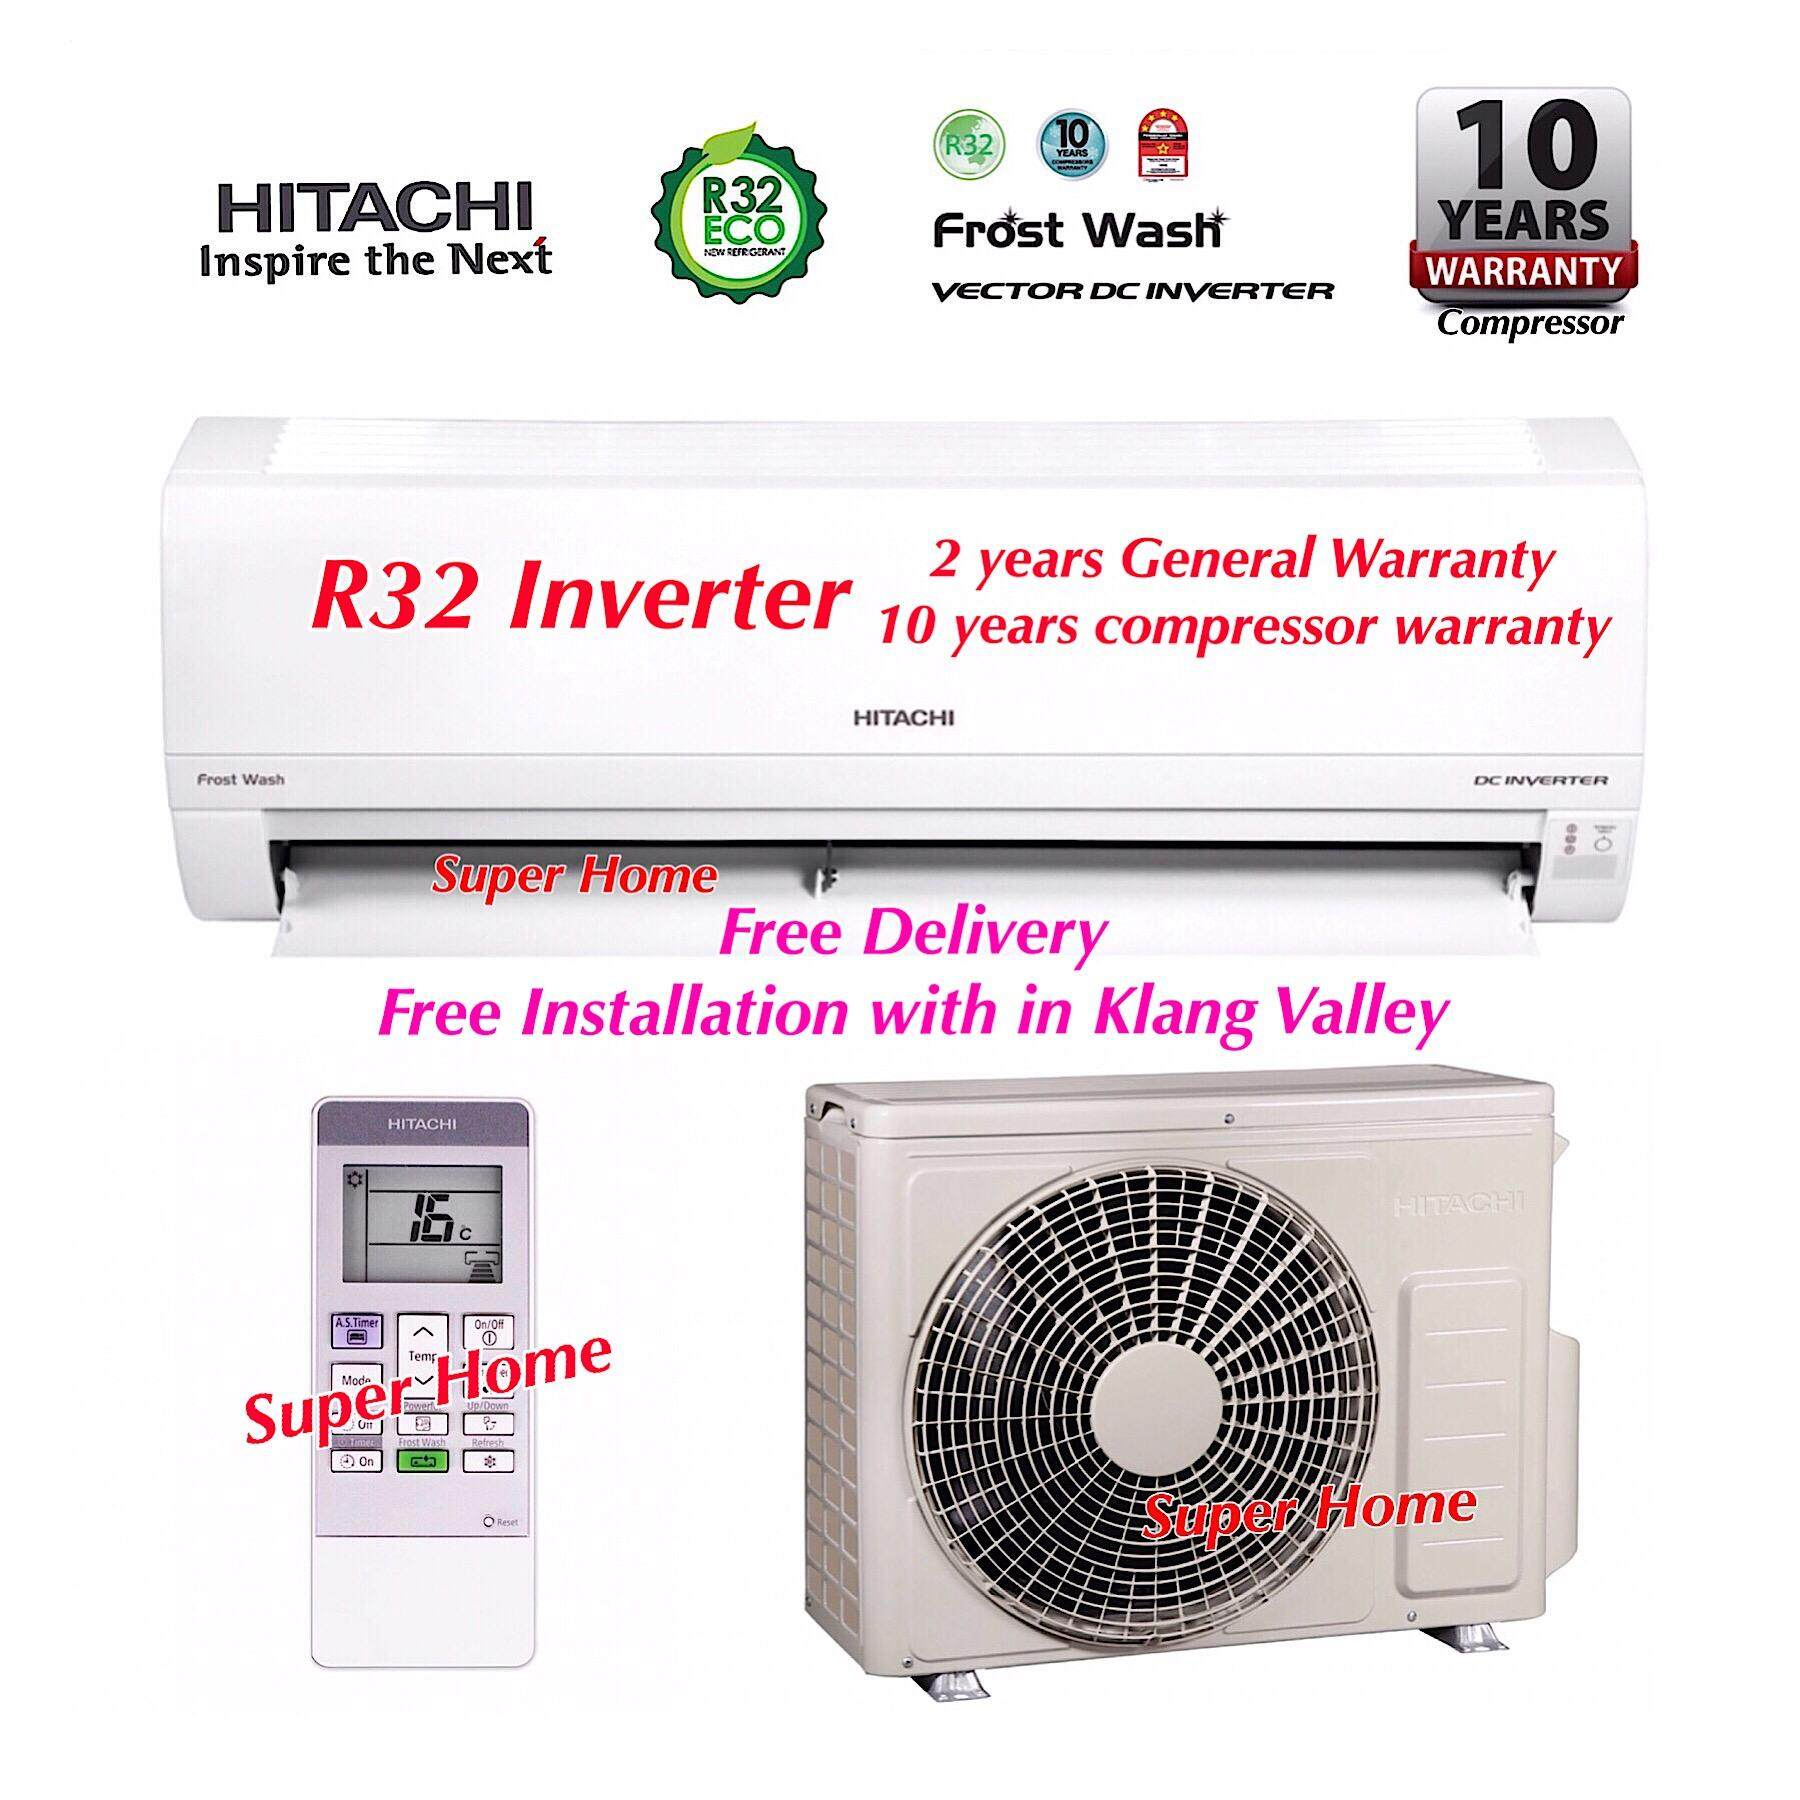 Hitachi 1.5hp Standard Inverter Series RAS-XH13CKM & RAC-XH13CKM Vector Inverter Wall Type Air Conditioner (R32) + Free Delivery + Free Installation Services (Only with in Klang Valley)